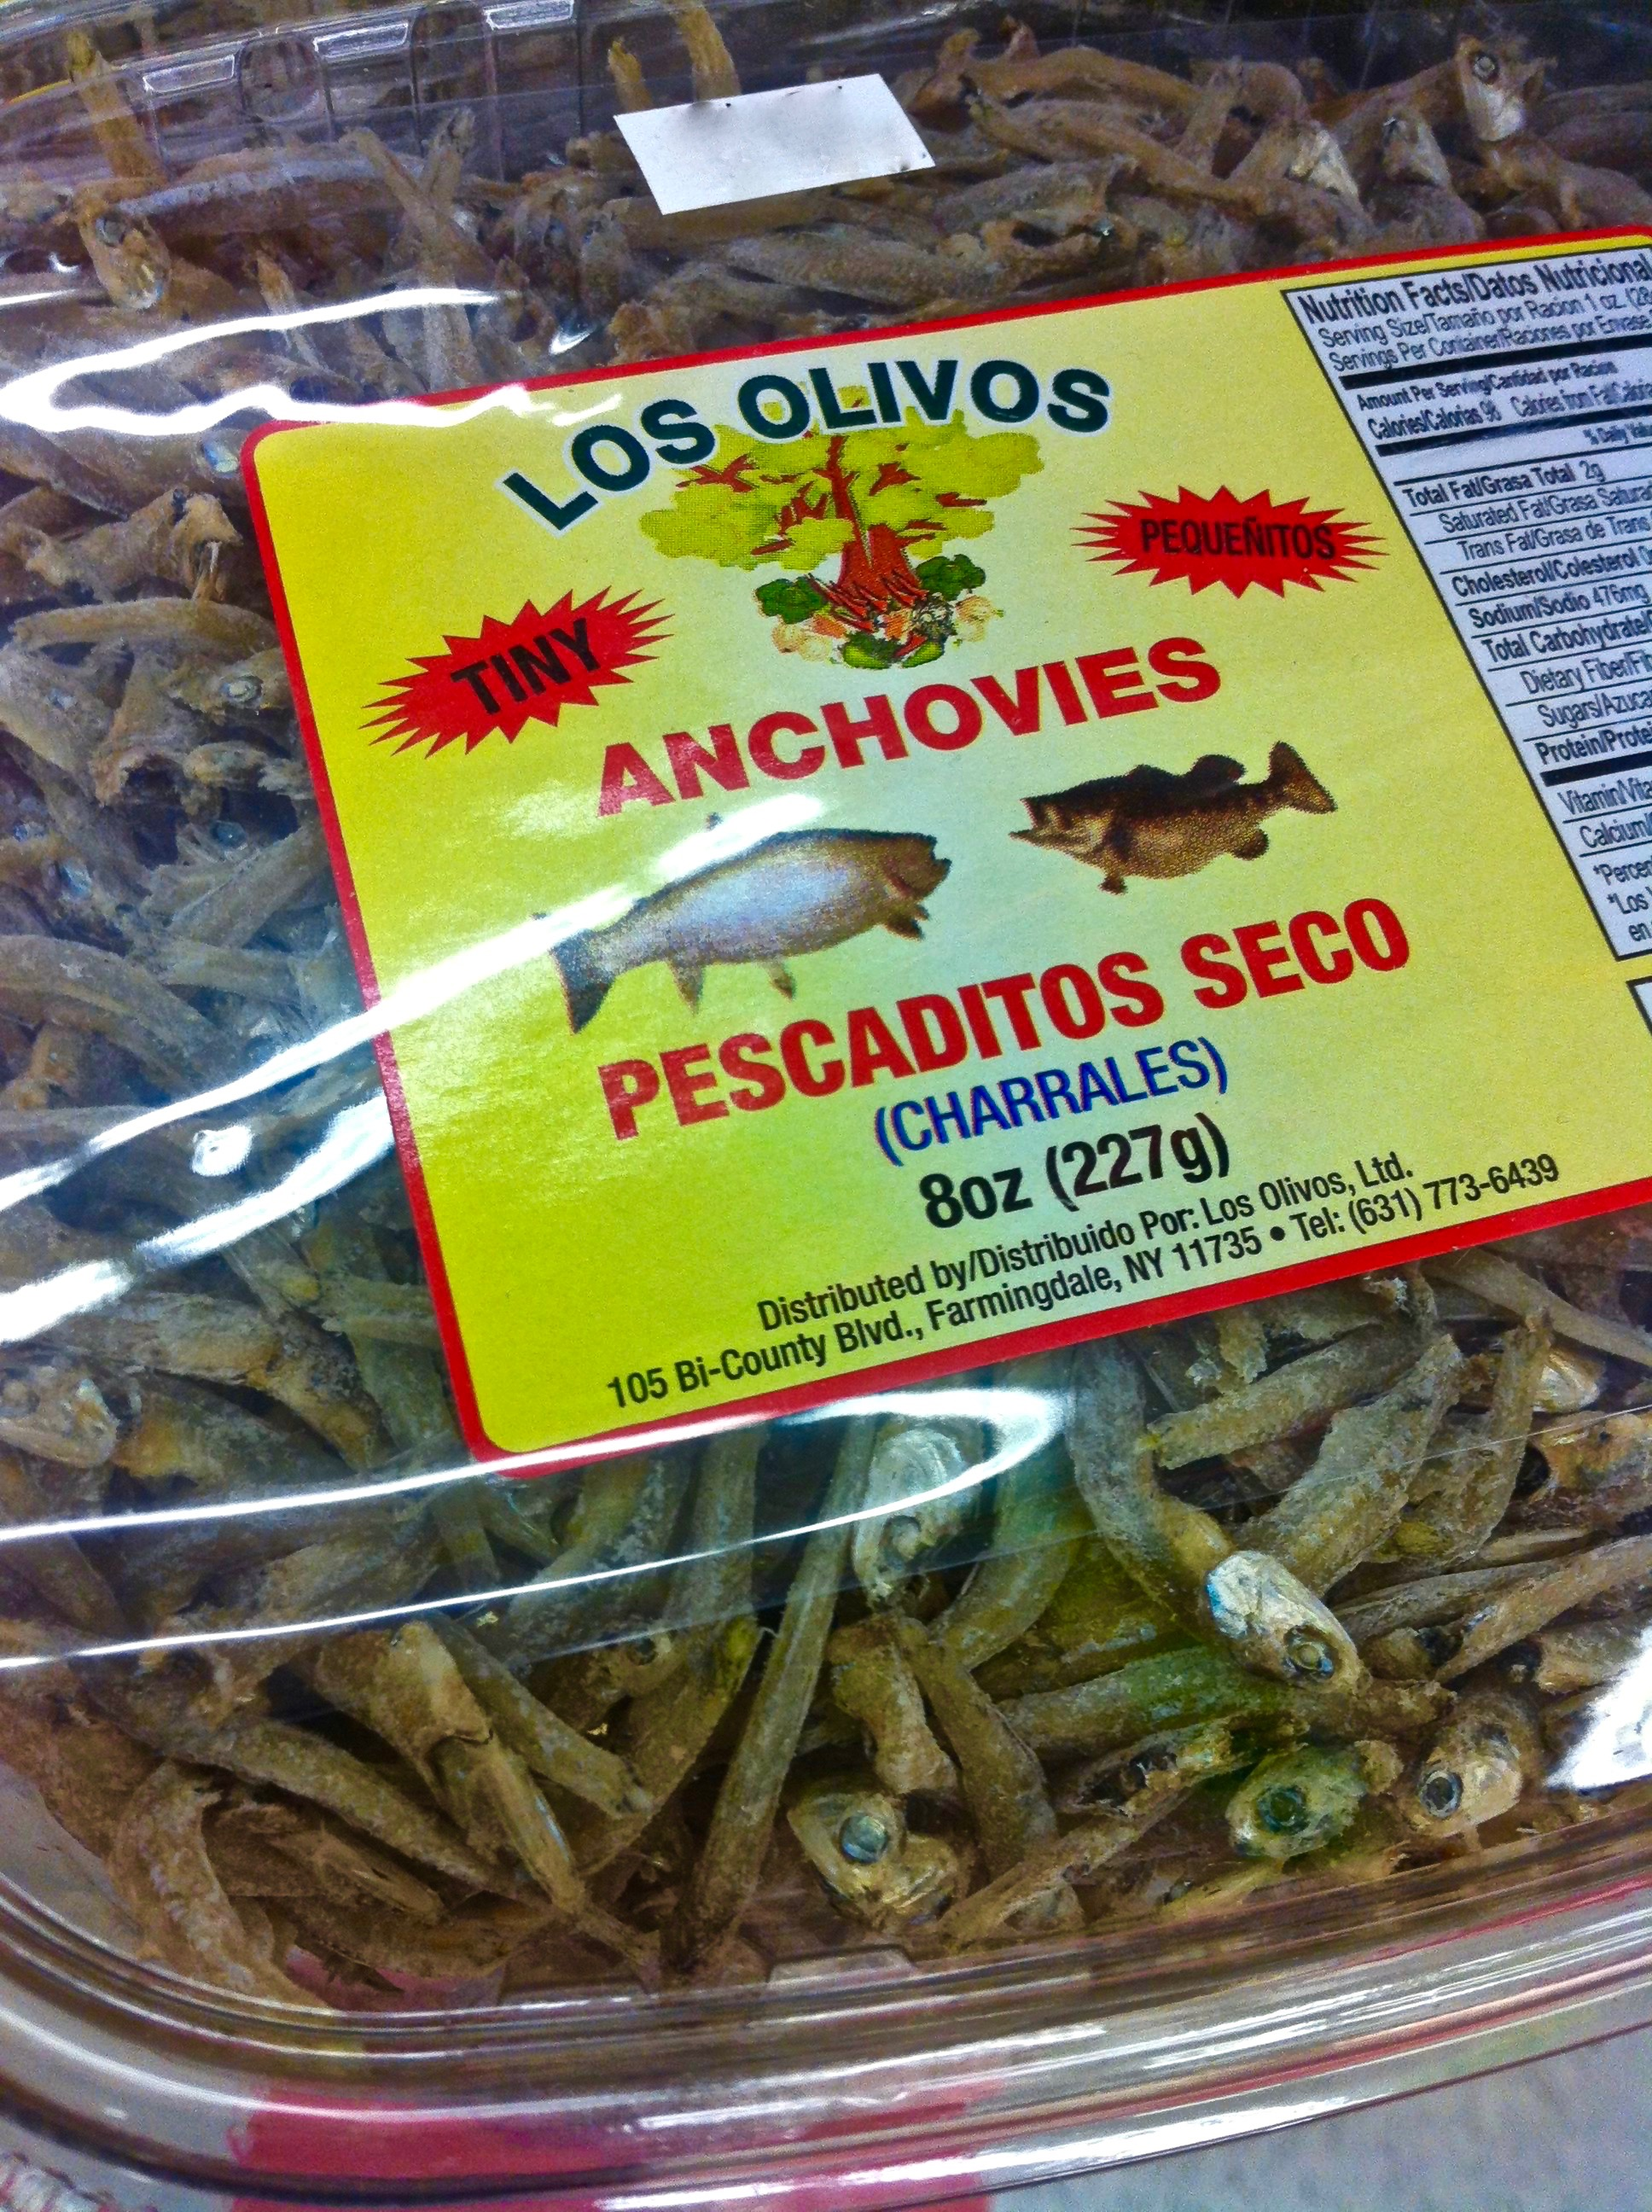 Anchovies is the name sometimes applied to the Mexican Charales